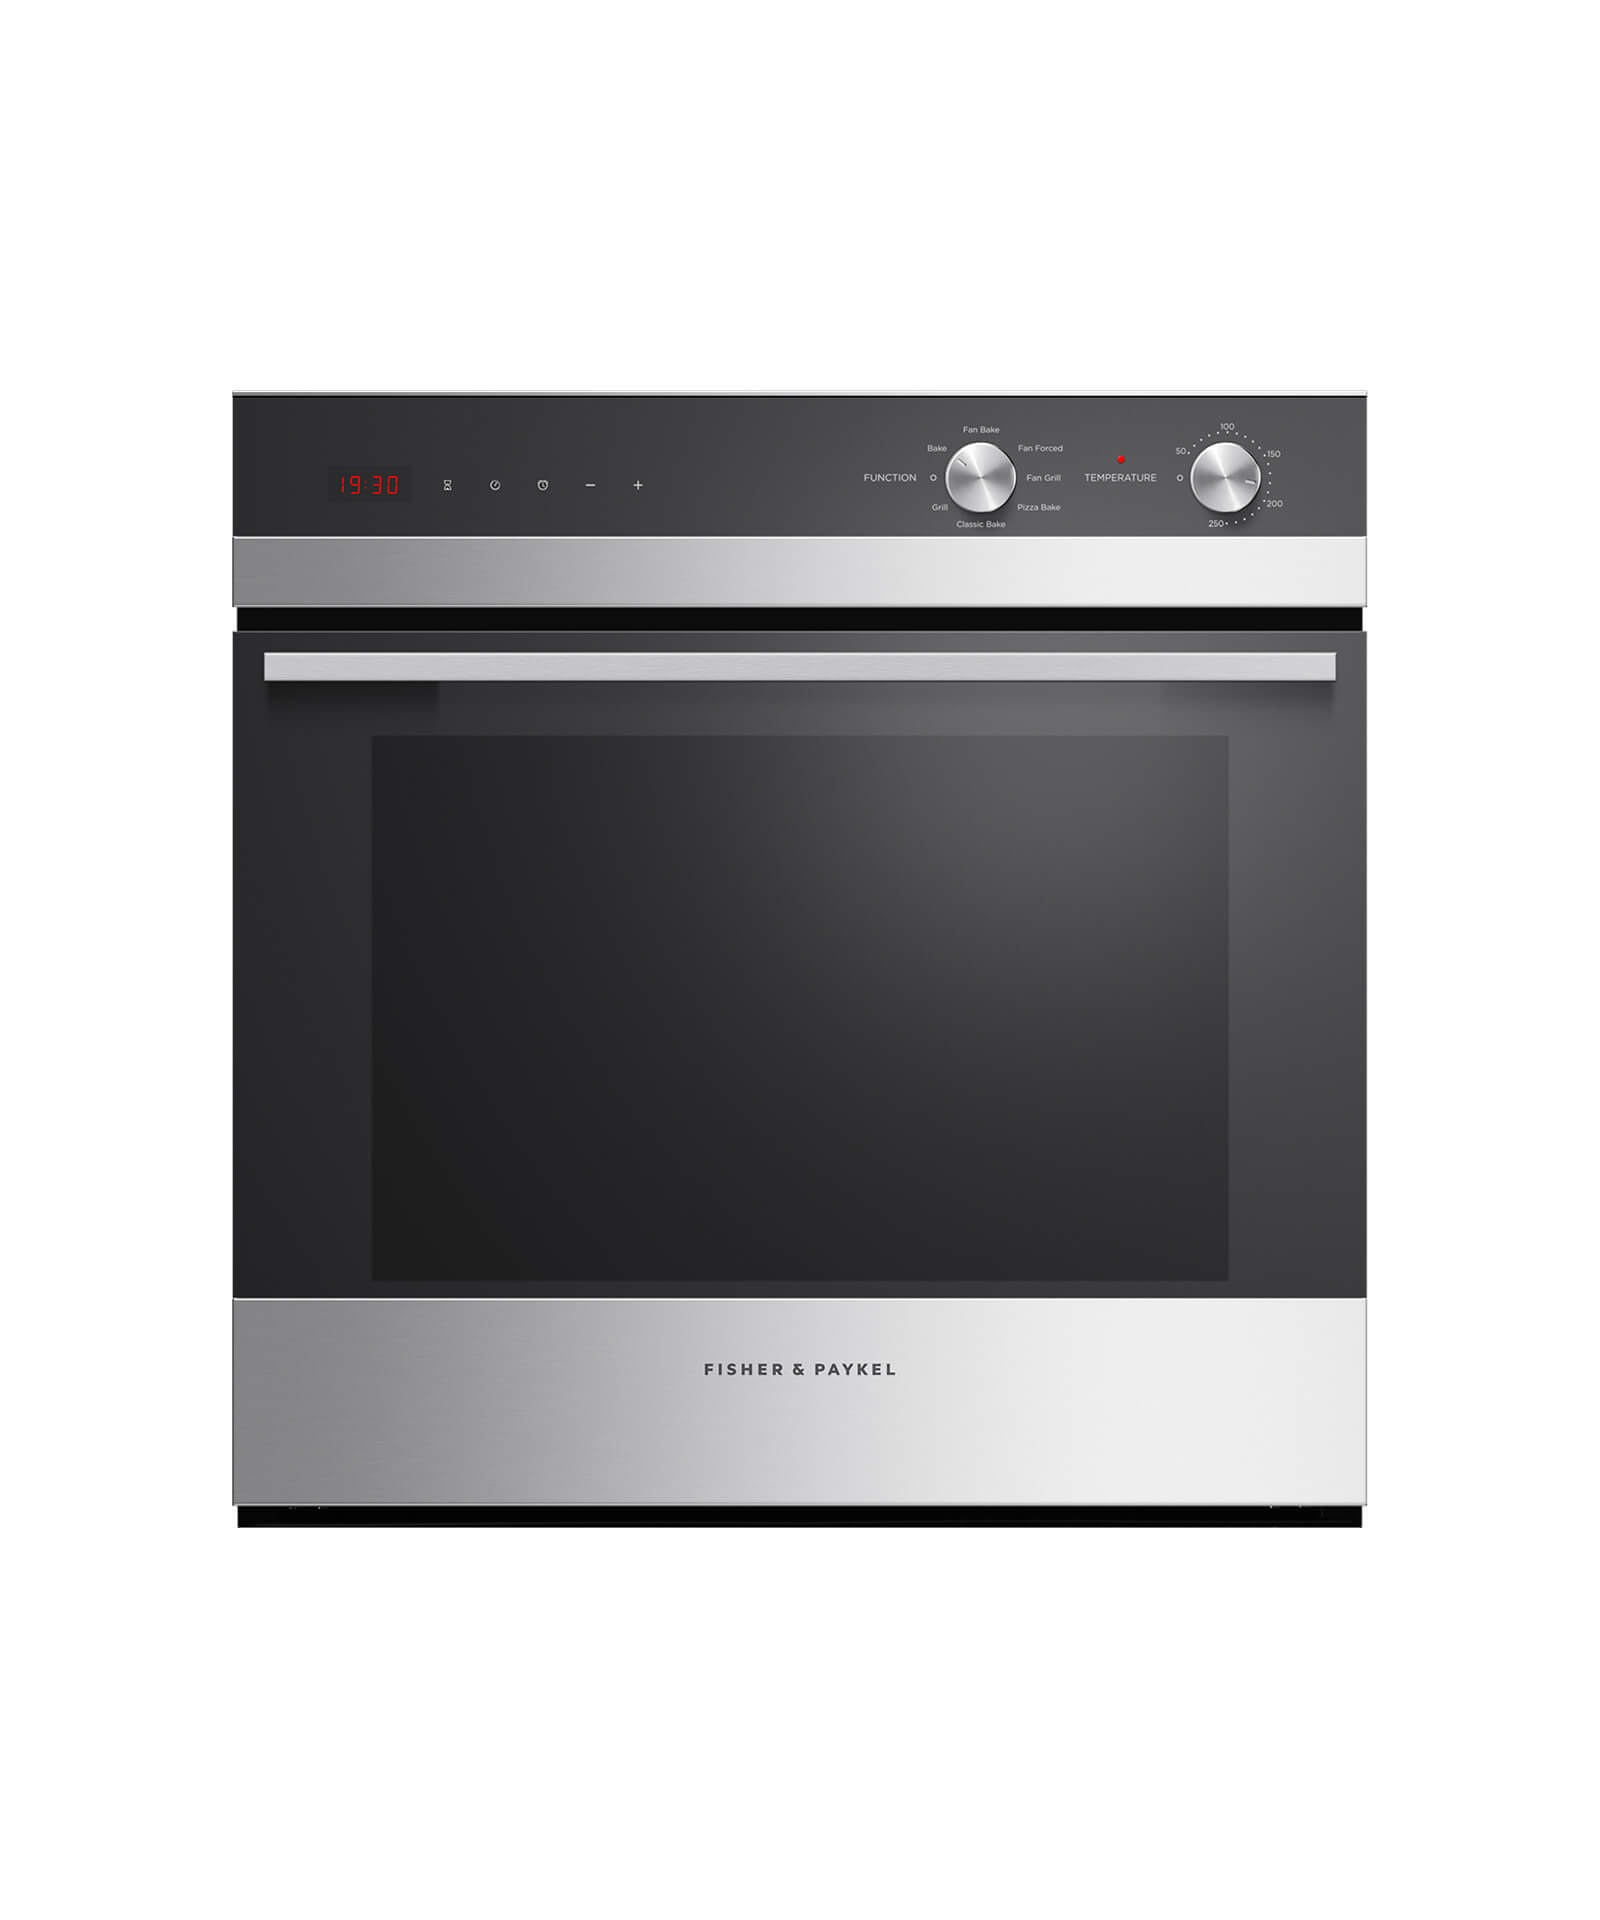 Fisher & Paykel OB60SC7CEX2 Oven